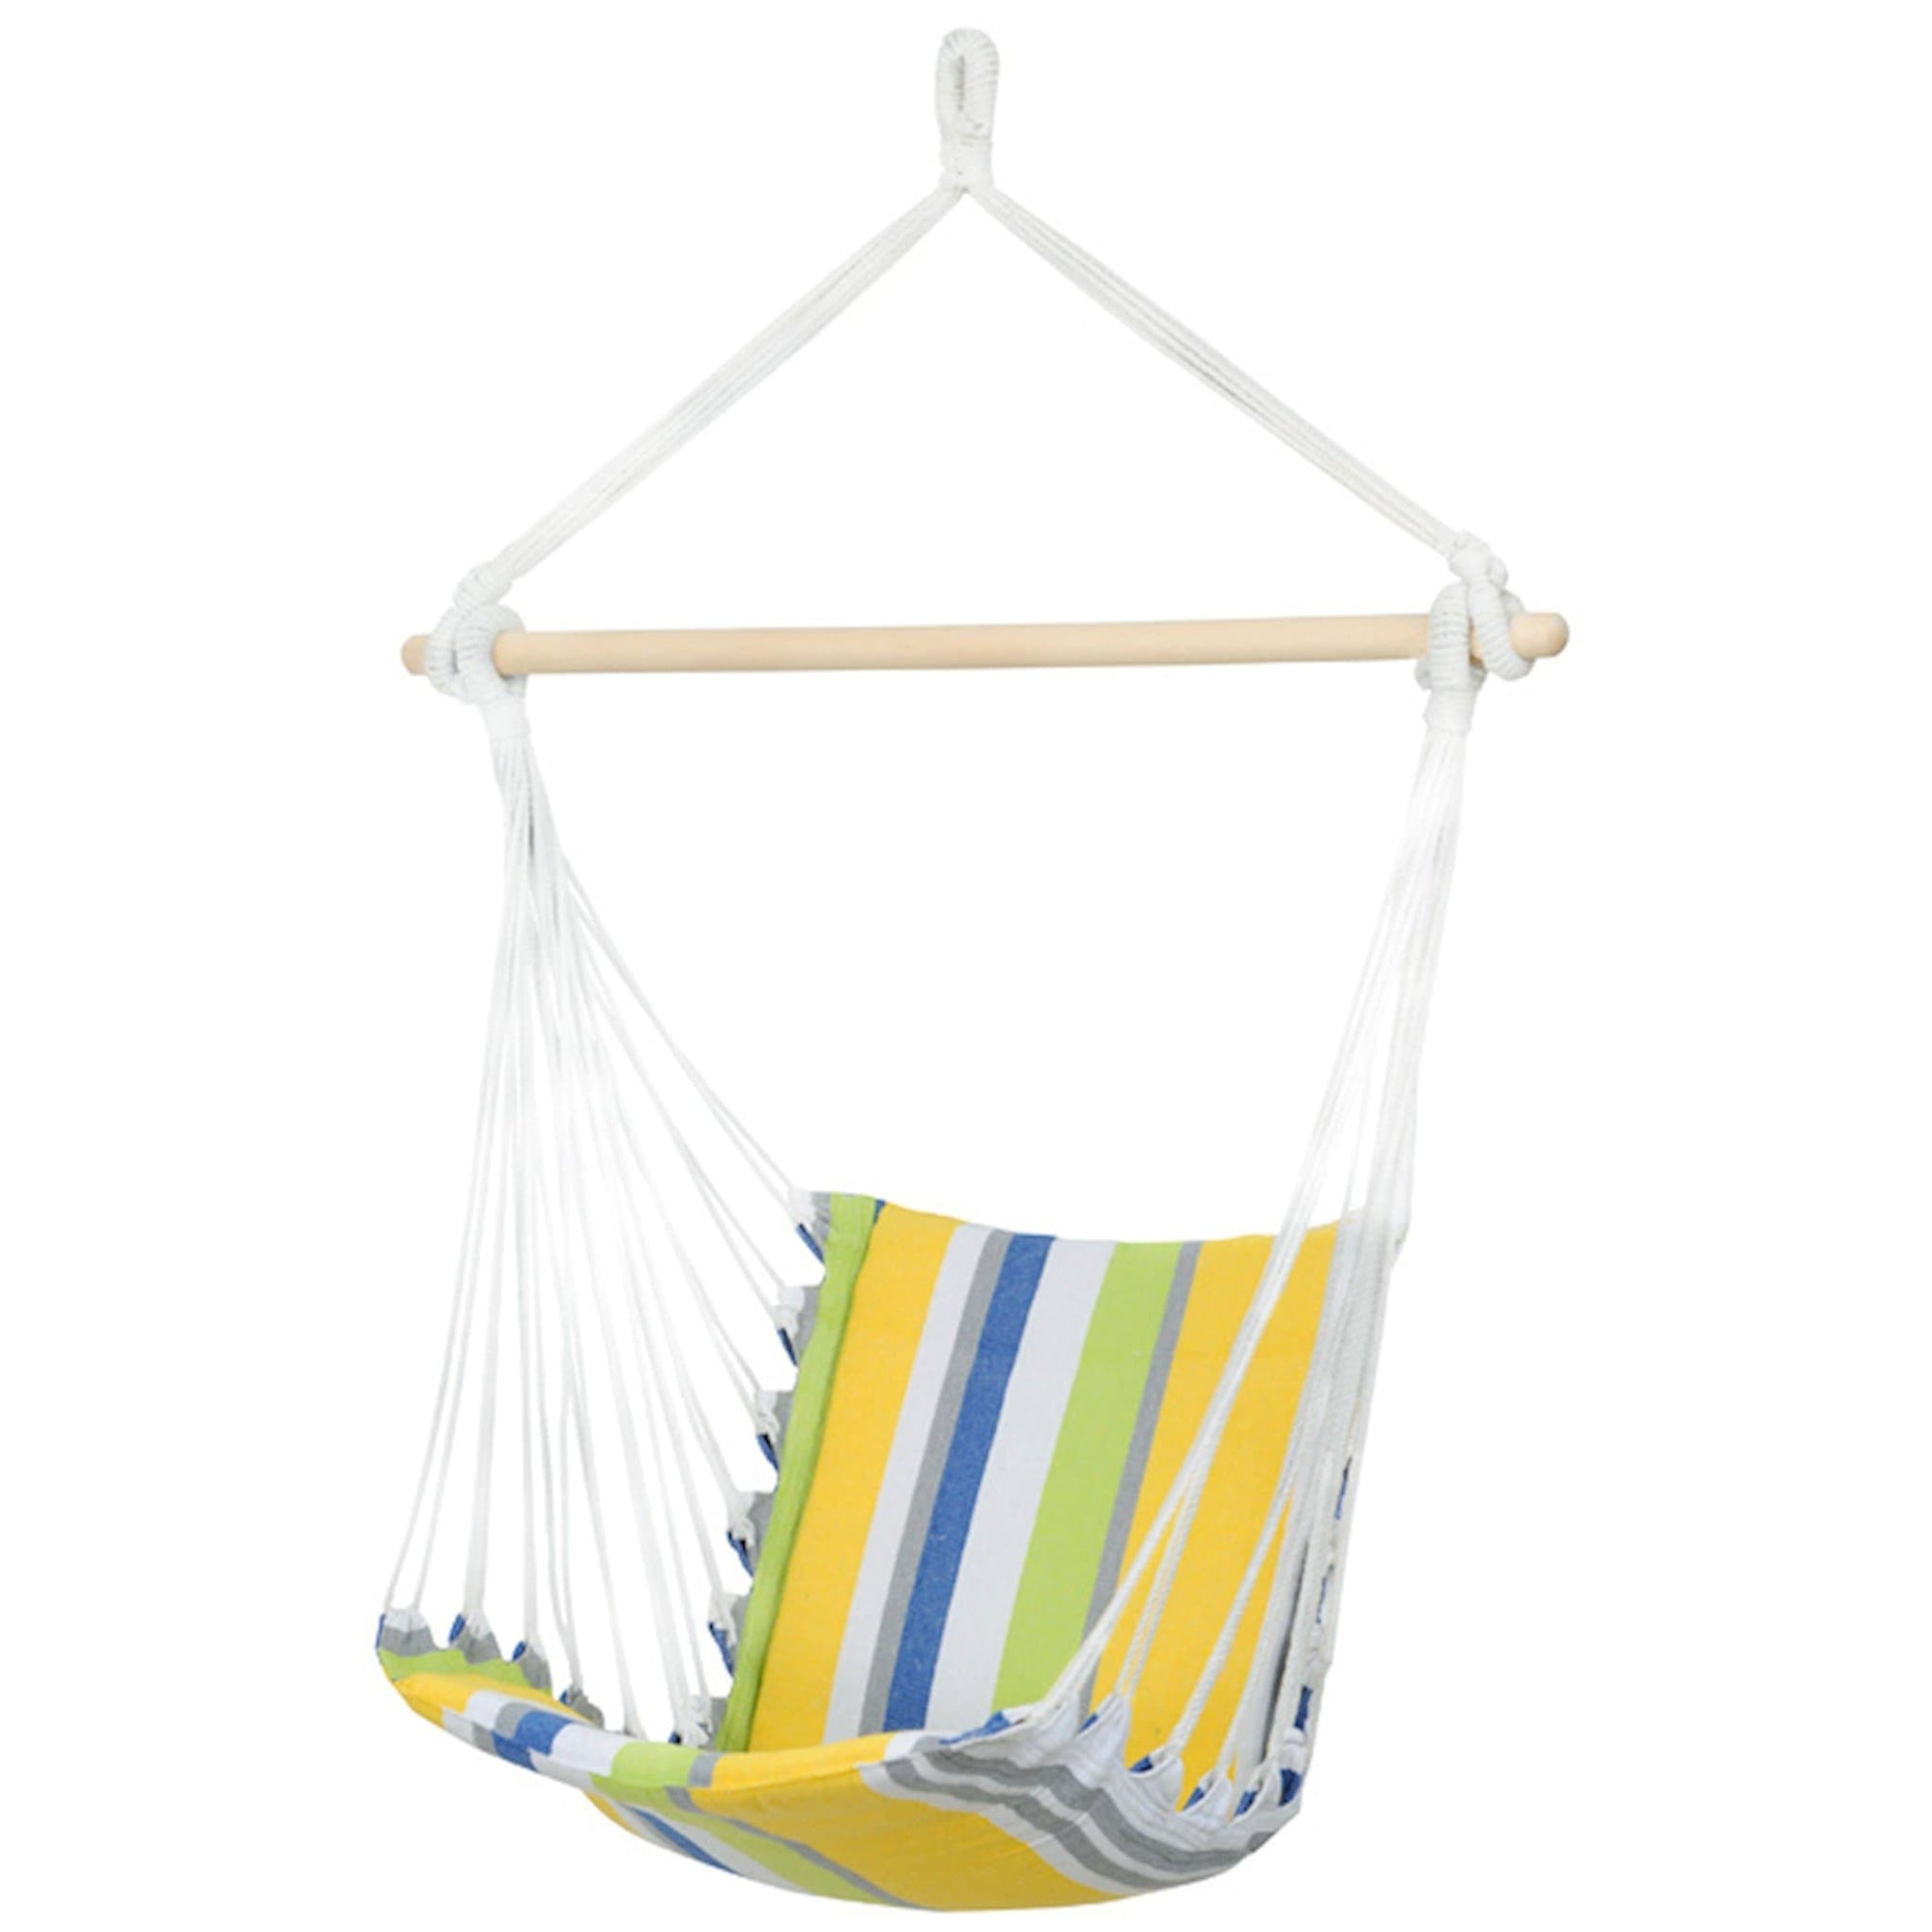 Amazonas Hammock Chair Kolibri Belize Hammock Chair